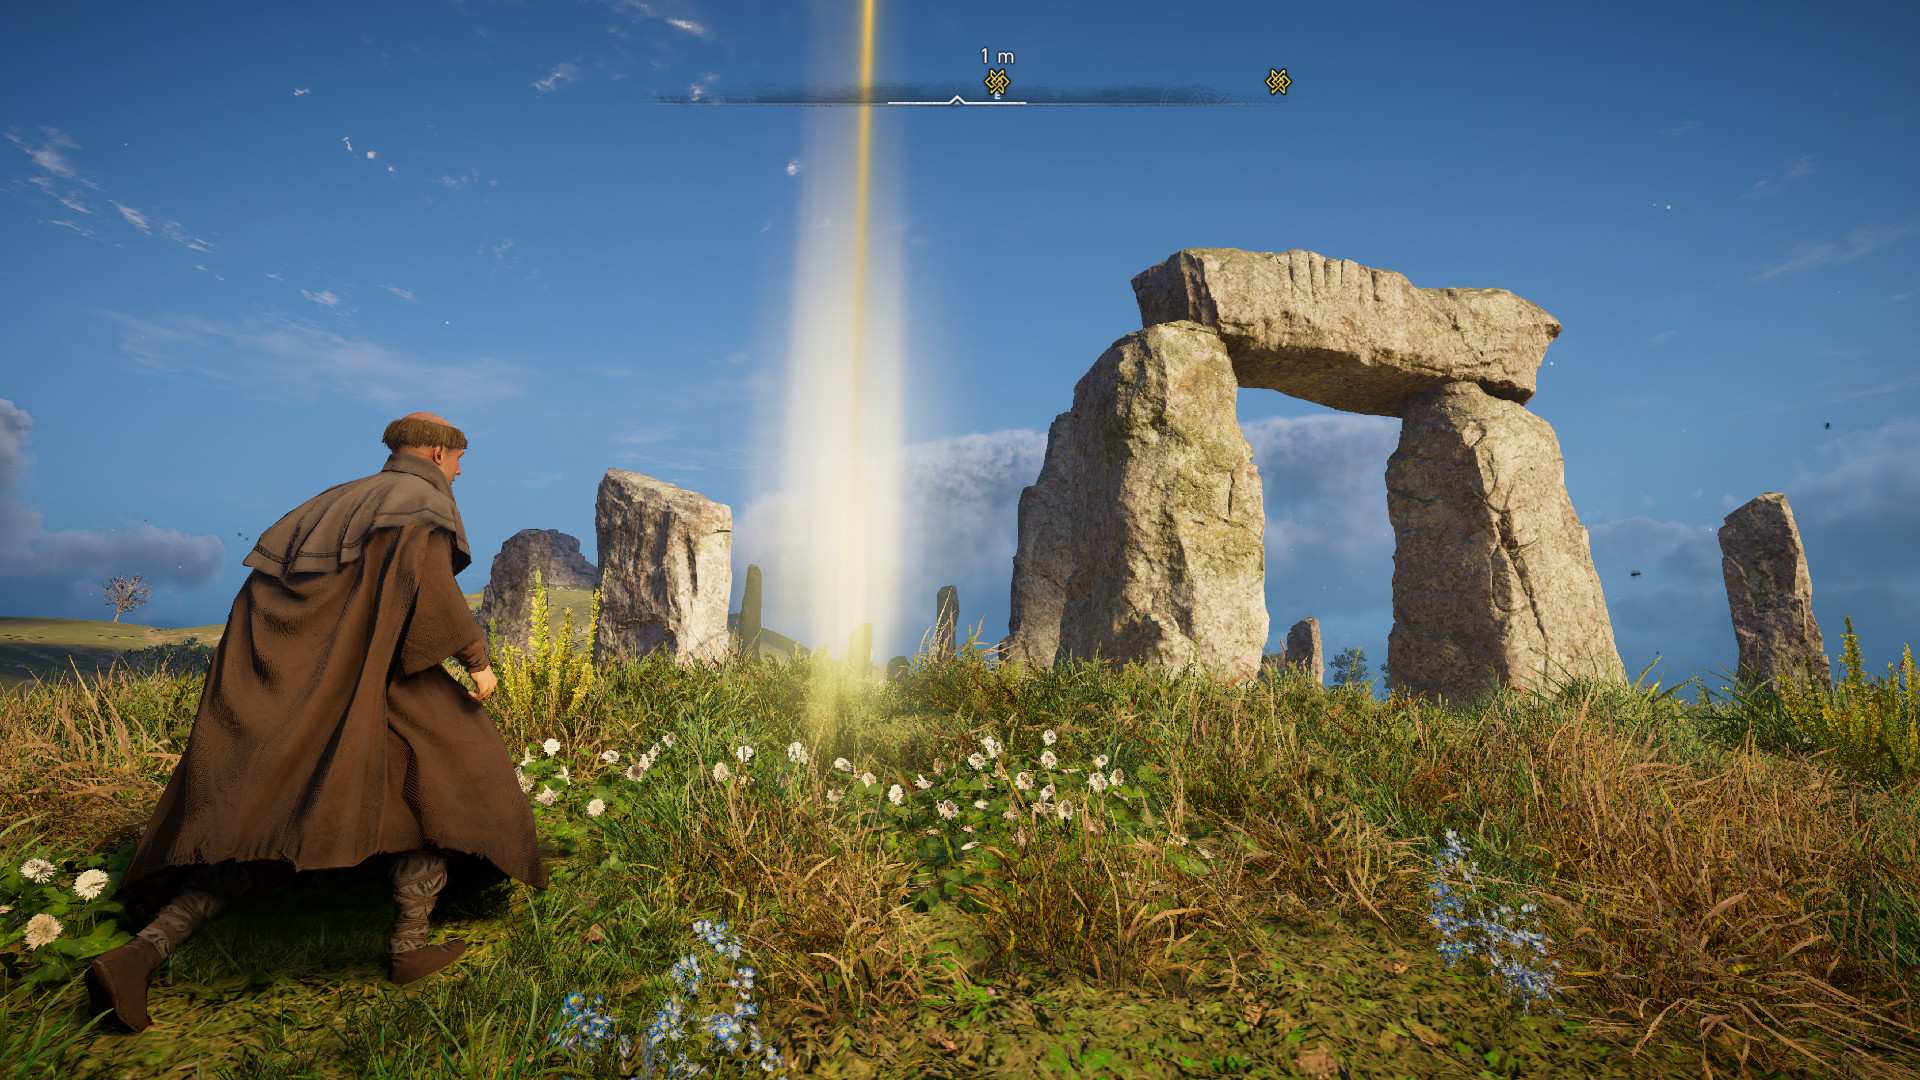 Assassin's Creed Valhalla's standalone version of Discovery Tour is a timed PC exclusive